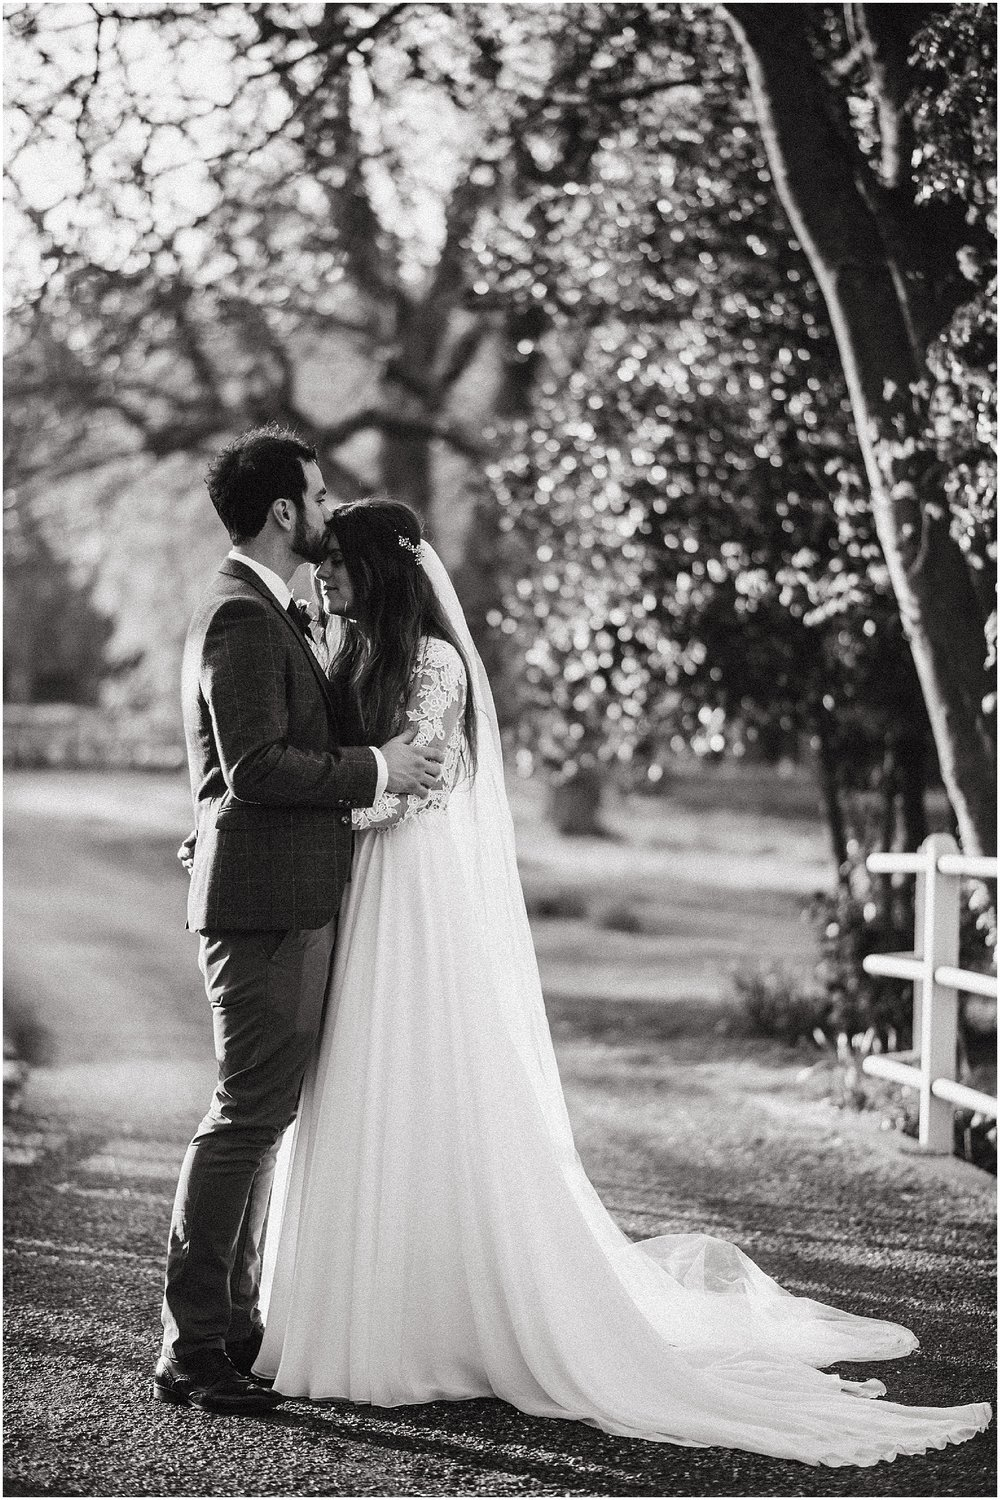 wedding photo ideas at notley abbey in buckinghamshire